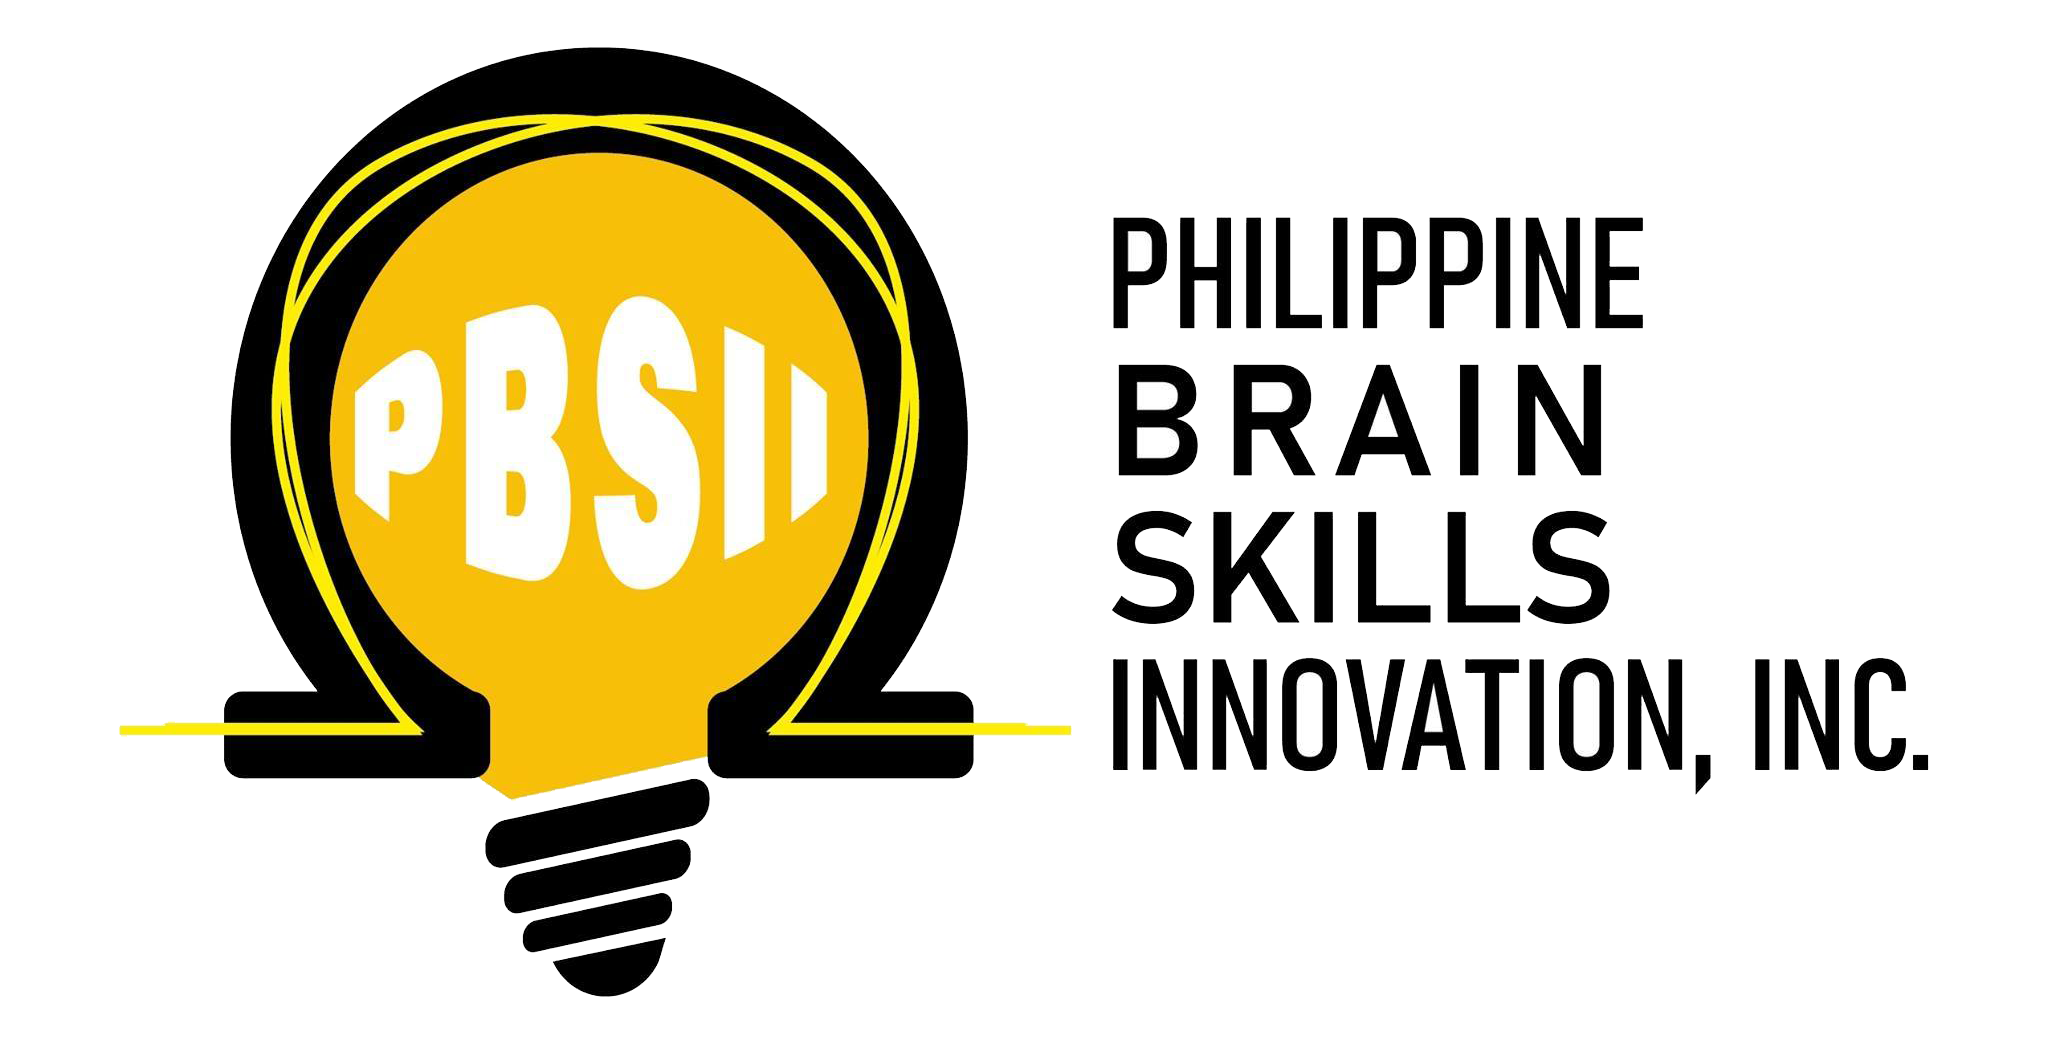 Philippine Brain Skills Innovation Group Inc. Retina Logo